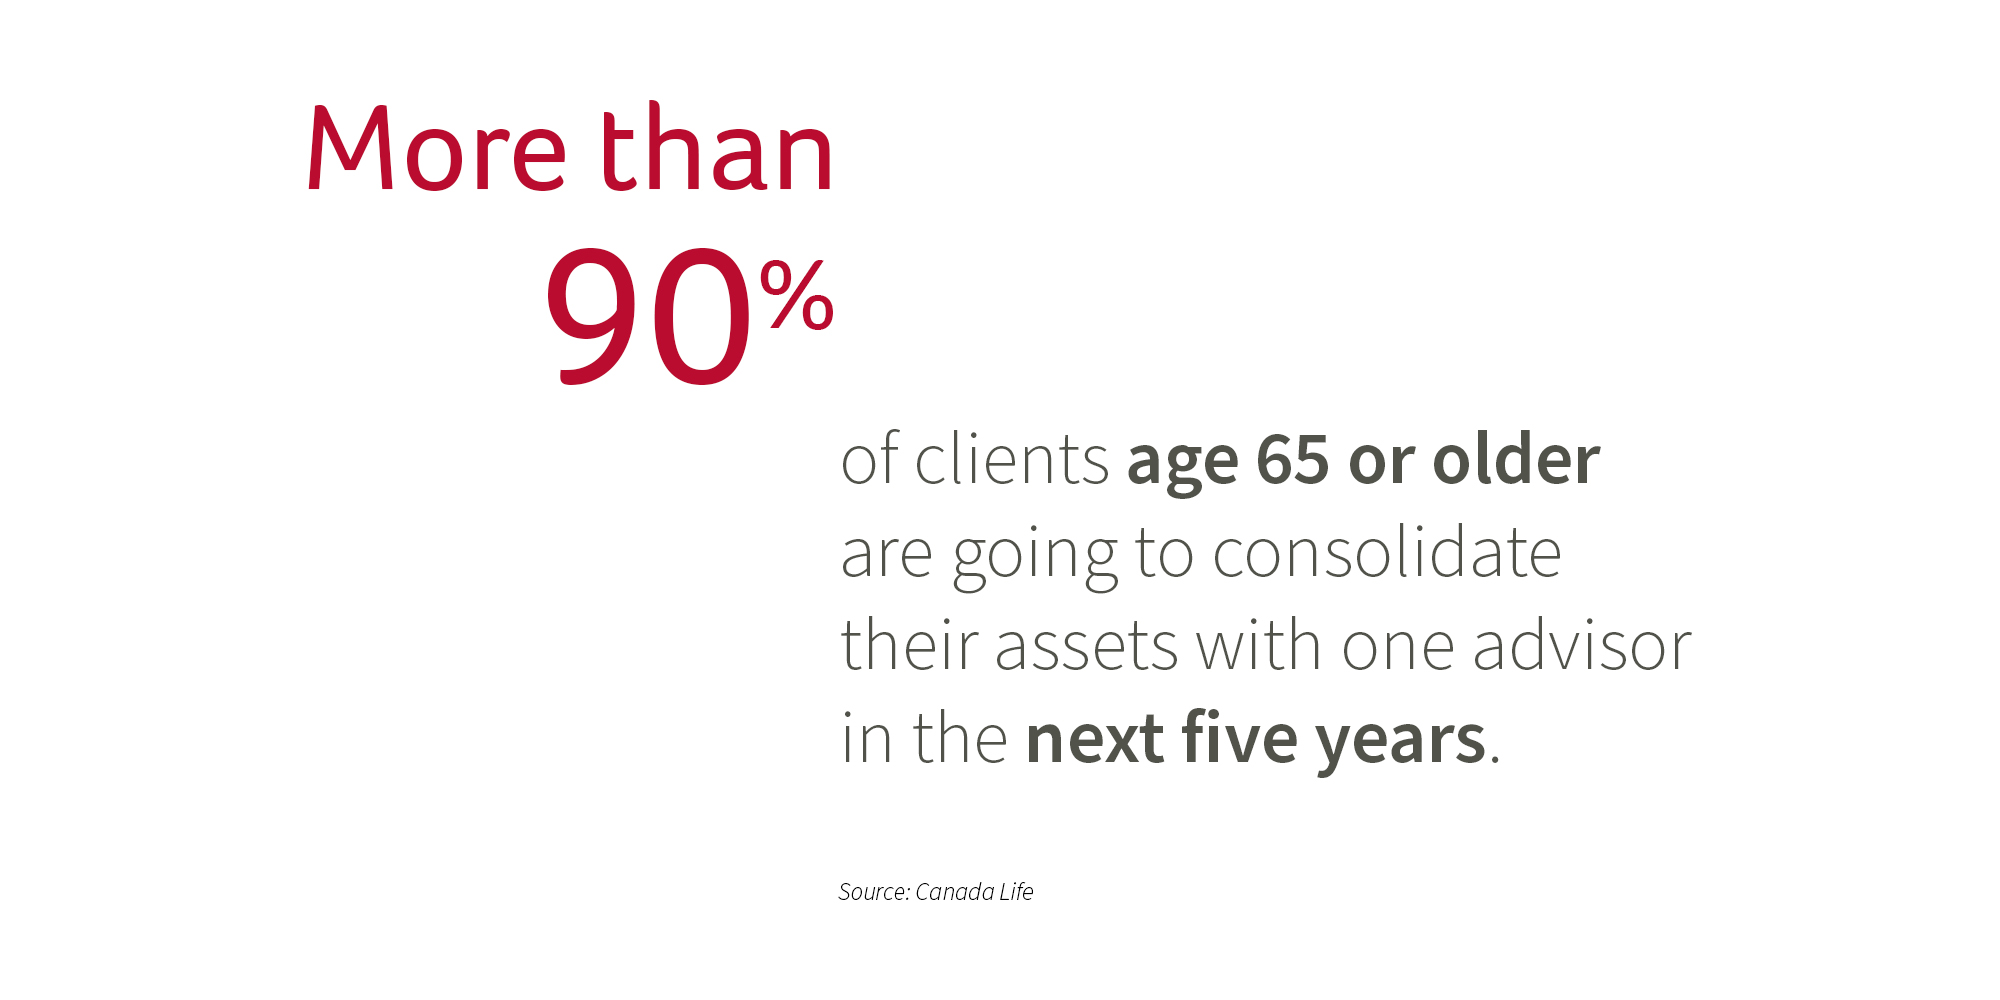 More than 90% of clients age 65 or older are going to consolidate their assets with one advisor in the next five years.